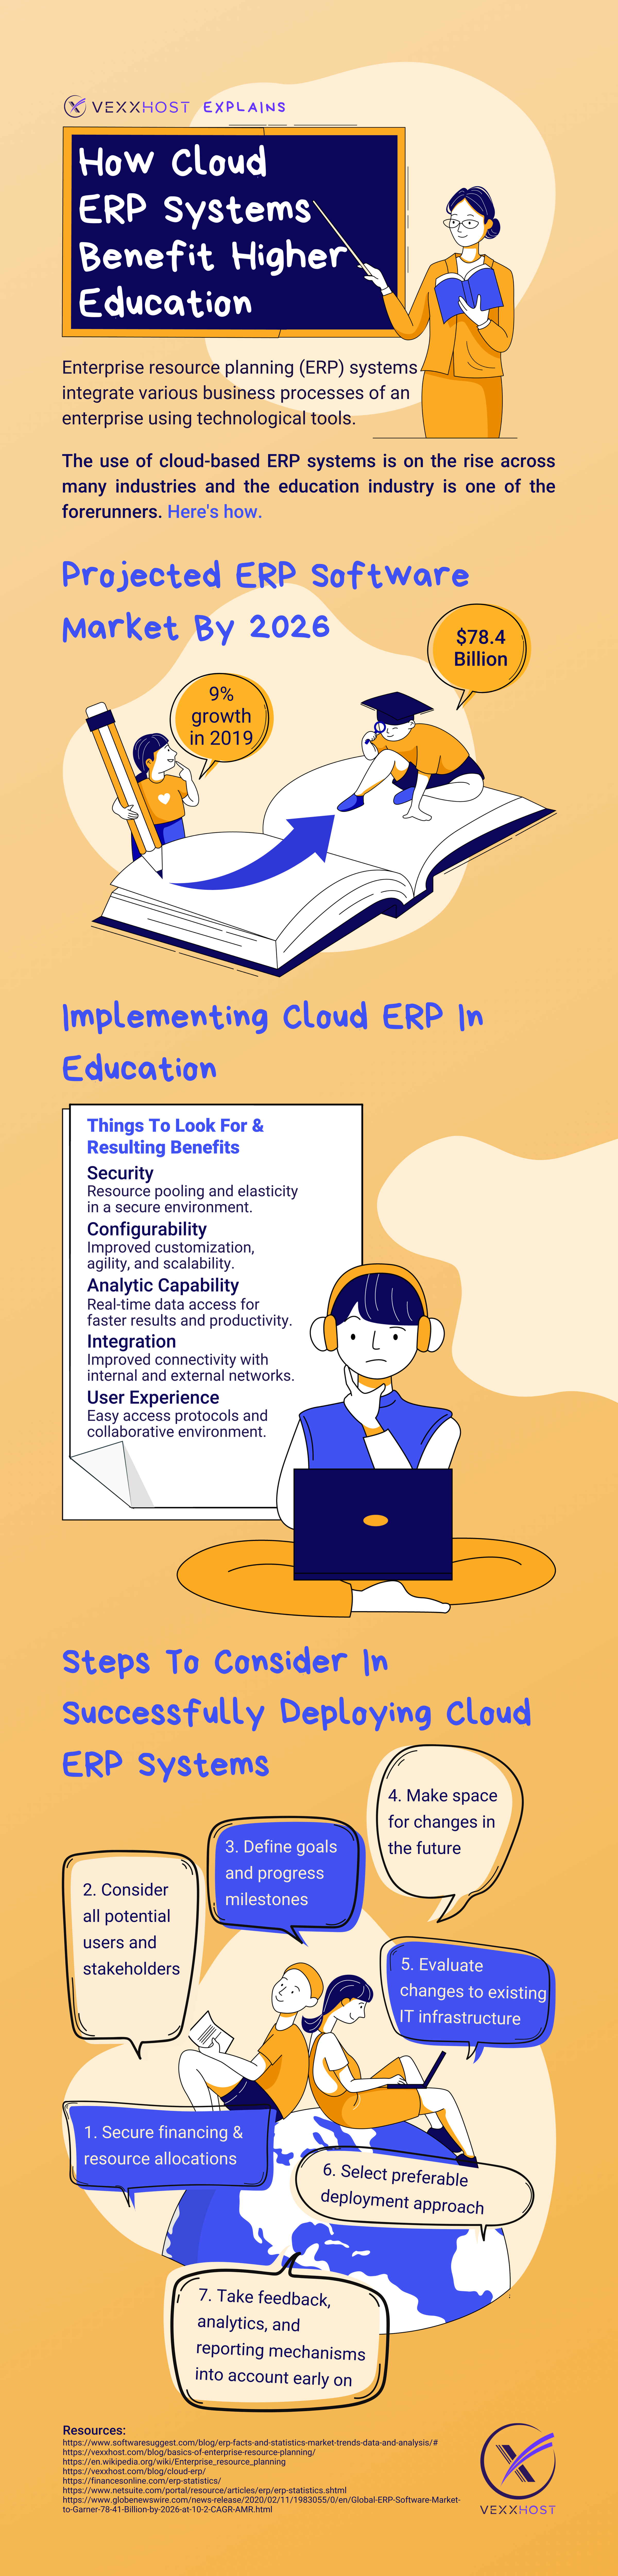 How-Cloud-ERP-Systems-Benefit-Higher-Education